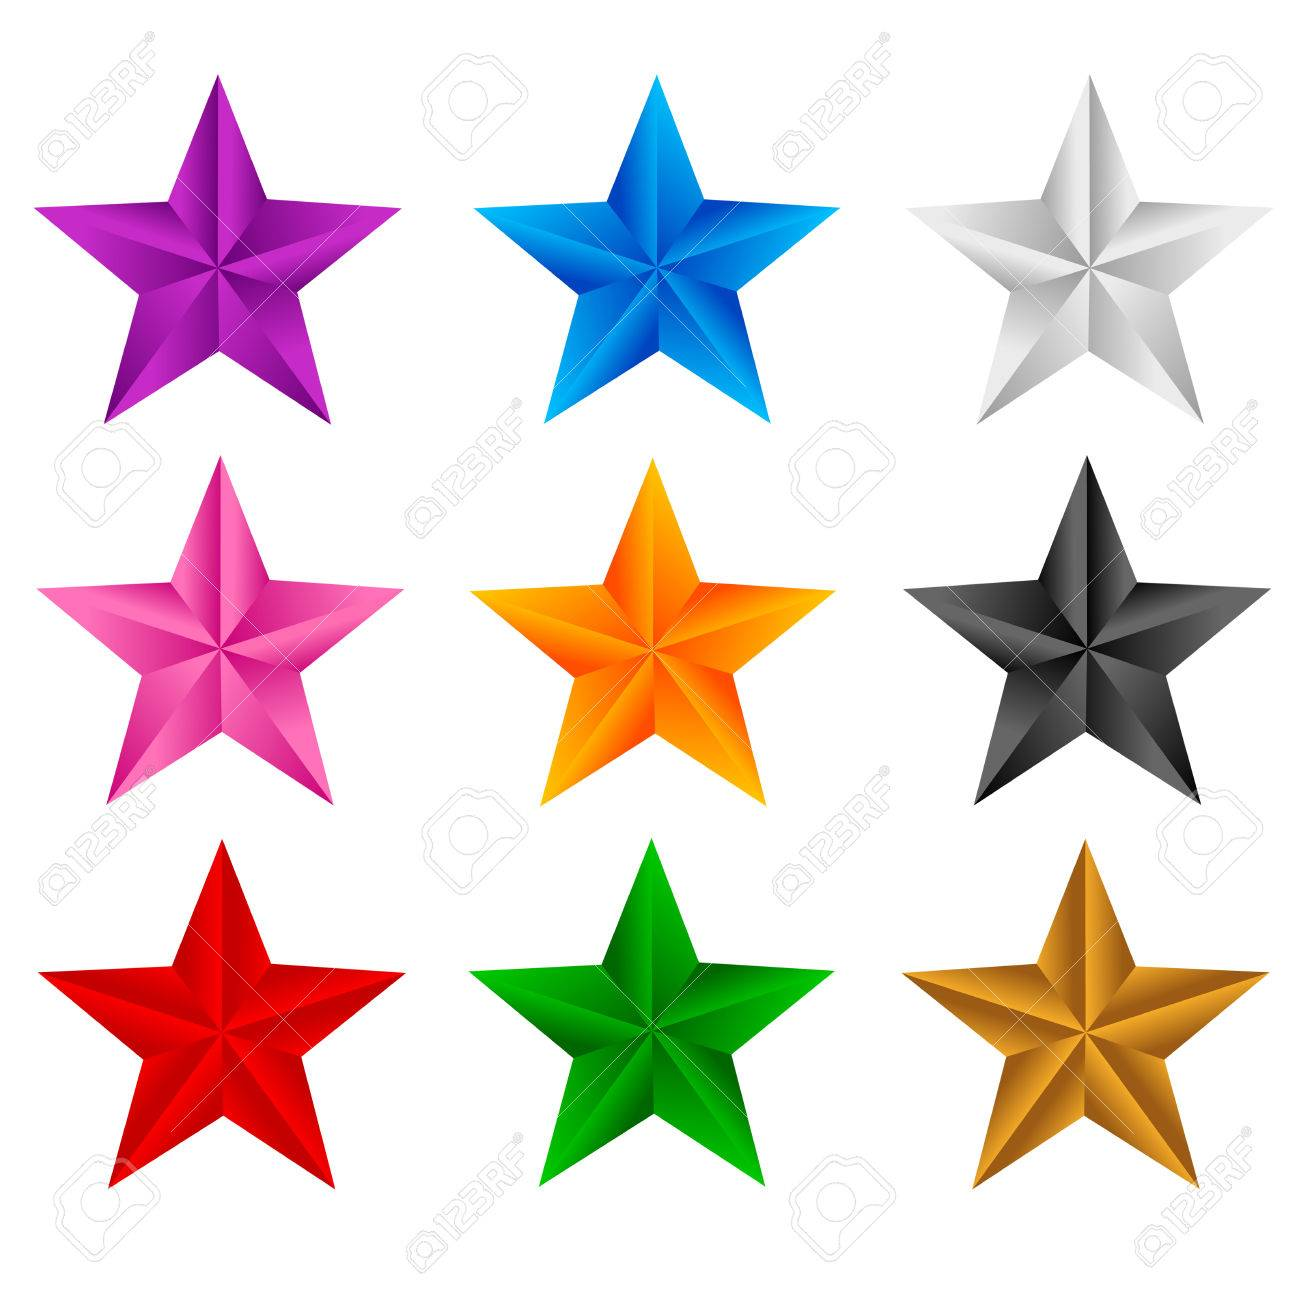 colorful stars clip art isolated on white background royalty free rh 123rf com Colorful Star Cluster Clip Art Colorful Stars Clip Art Graduation